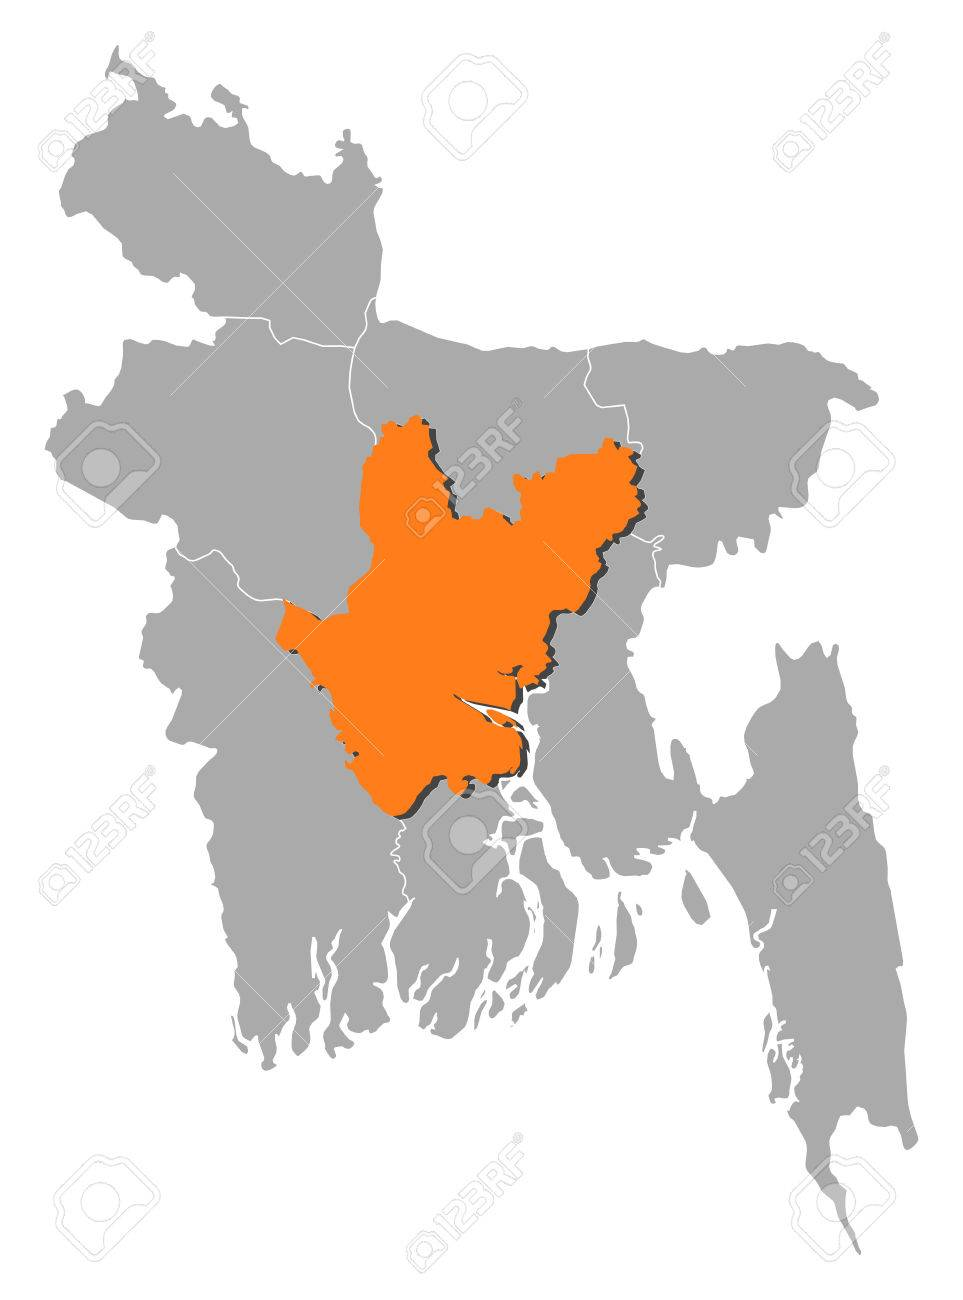 Map Of desh With The Provinces, Dhaka Is Highlighted By ... Dhaka World Map on